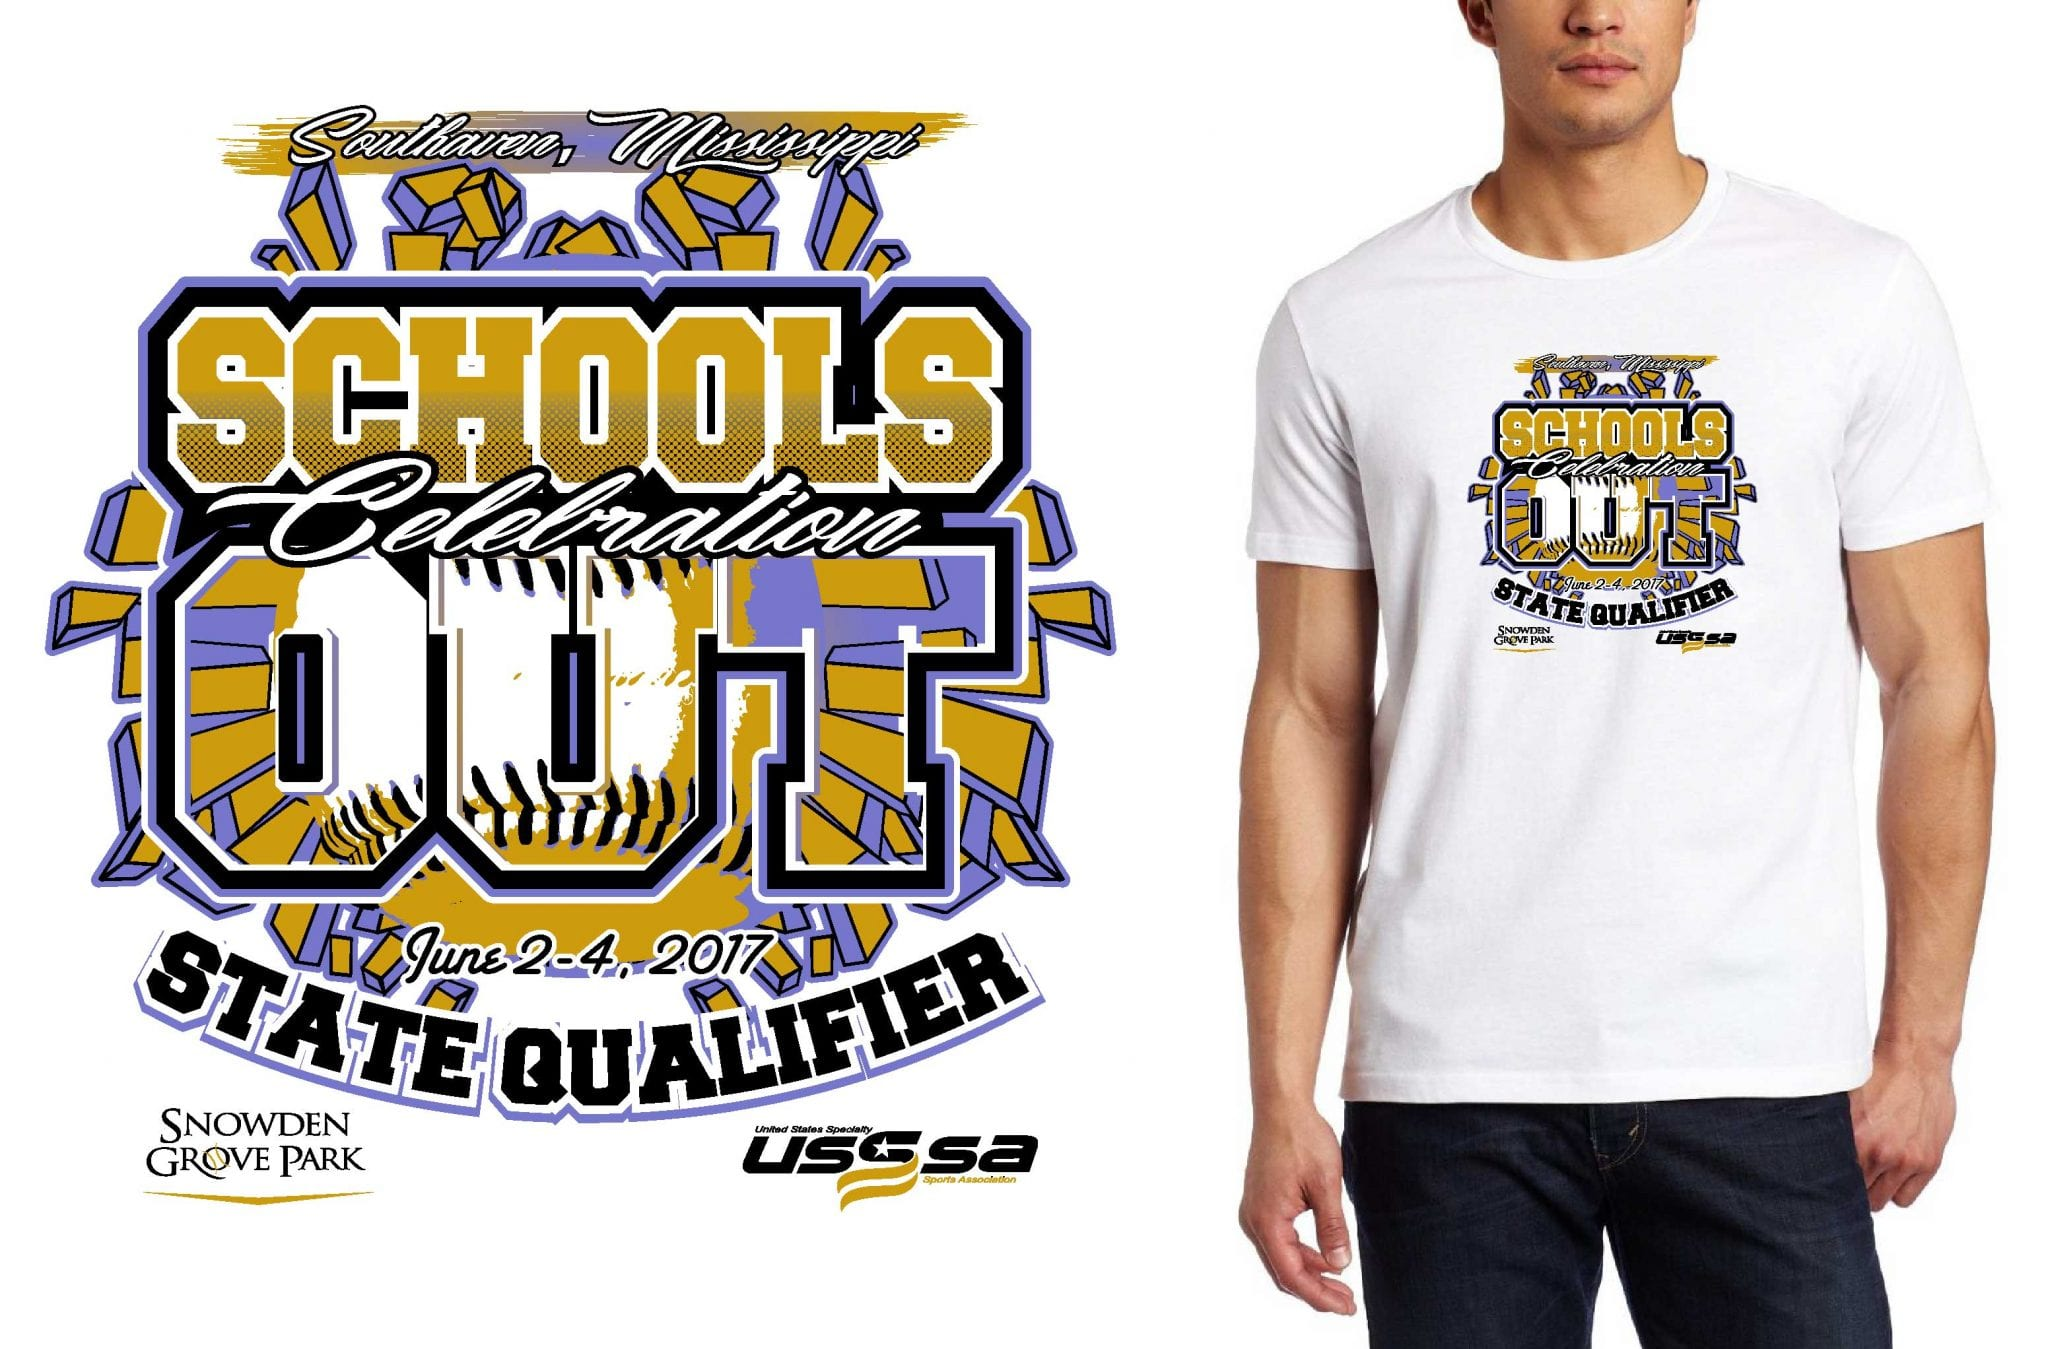 BASEBALL TSHIRT LOGO DESIGN southaven-shootout-schools-out-celebration UrArtStudio